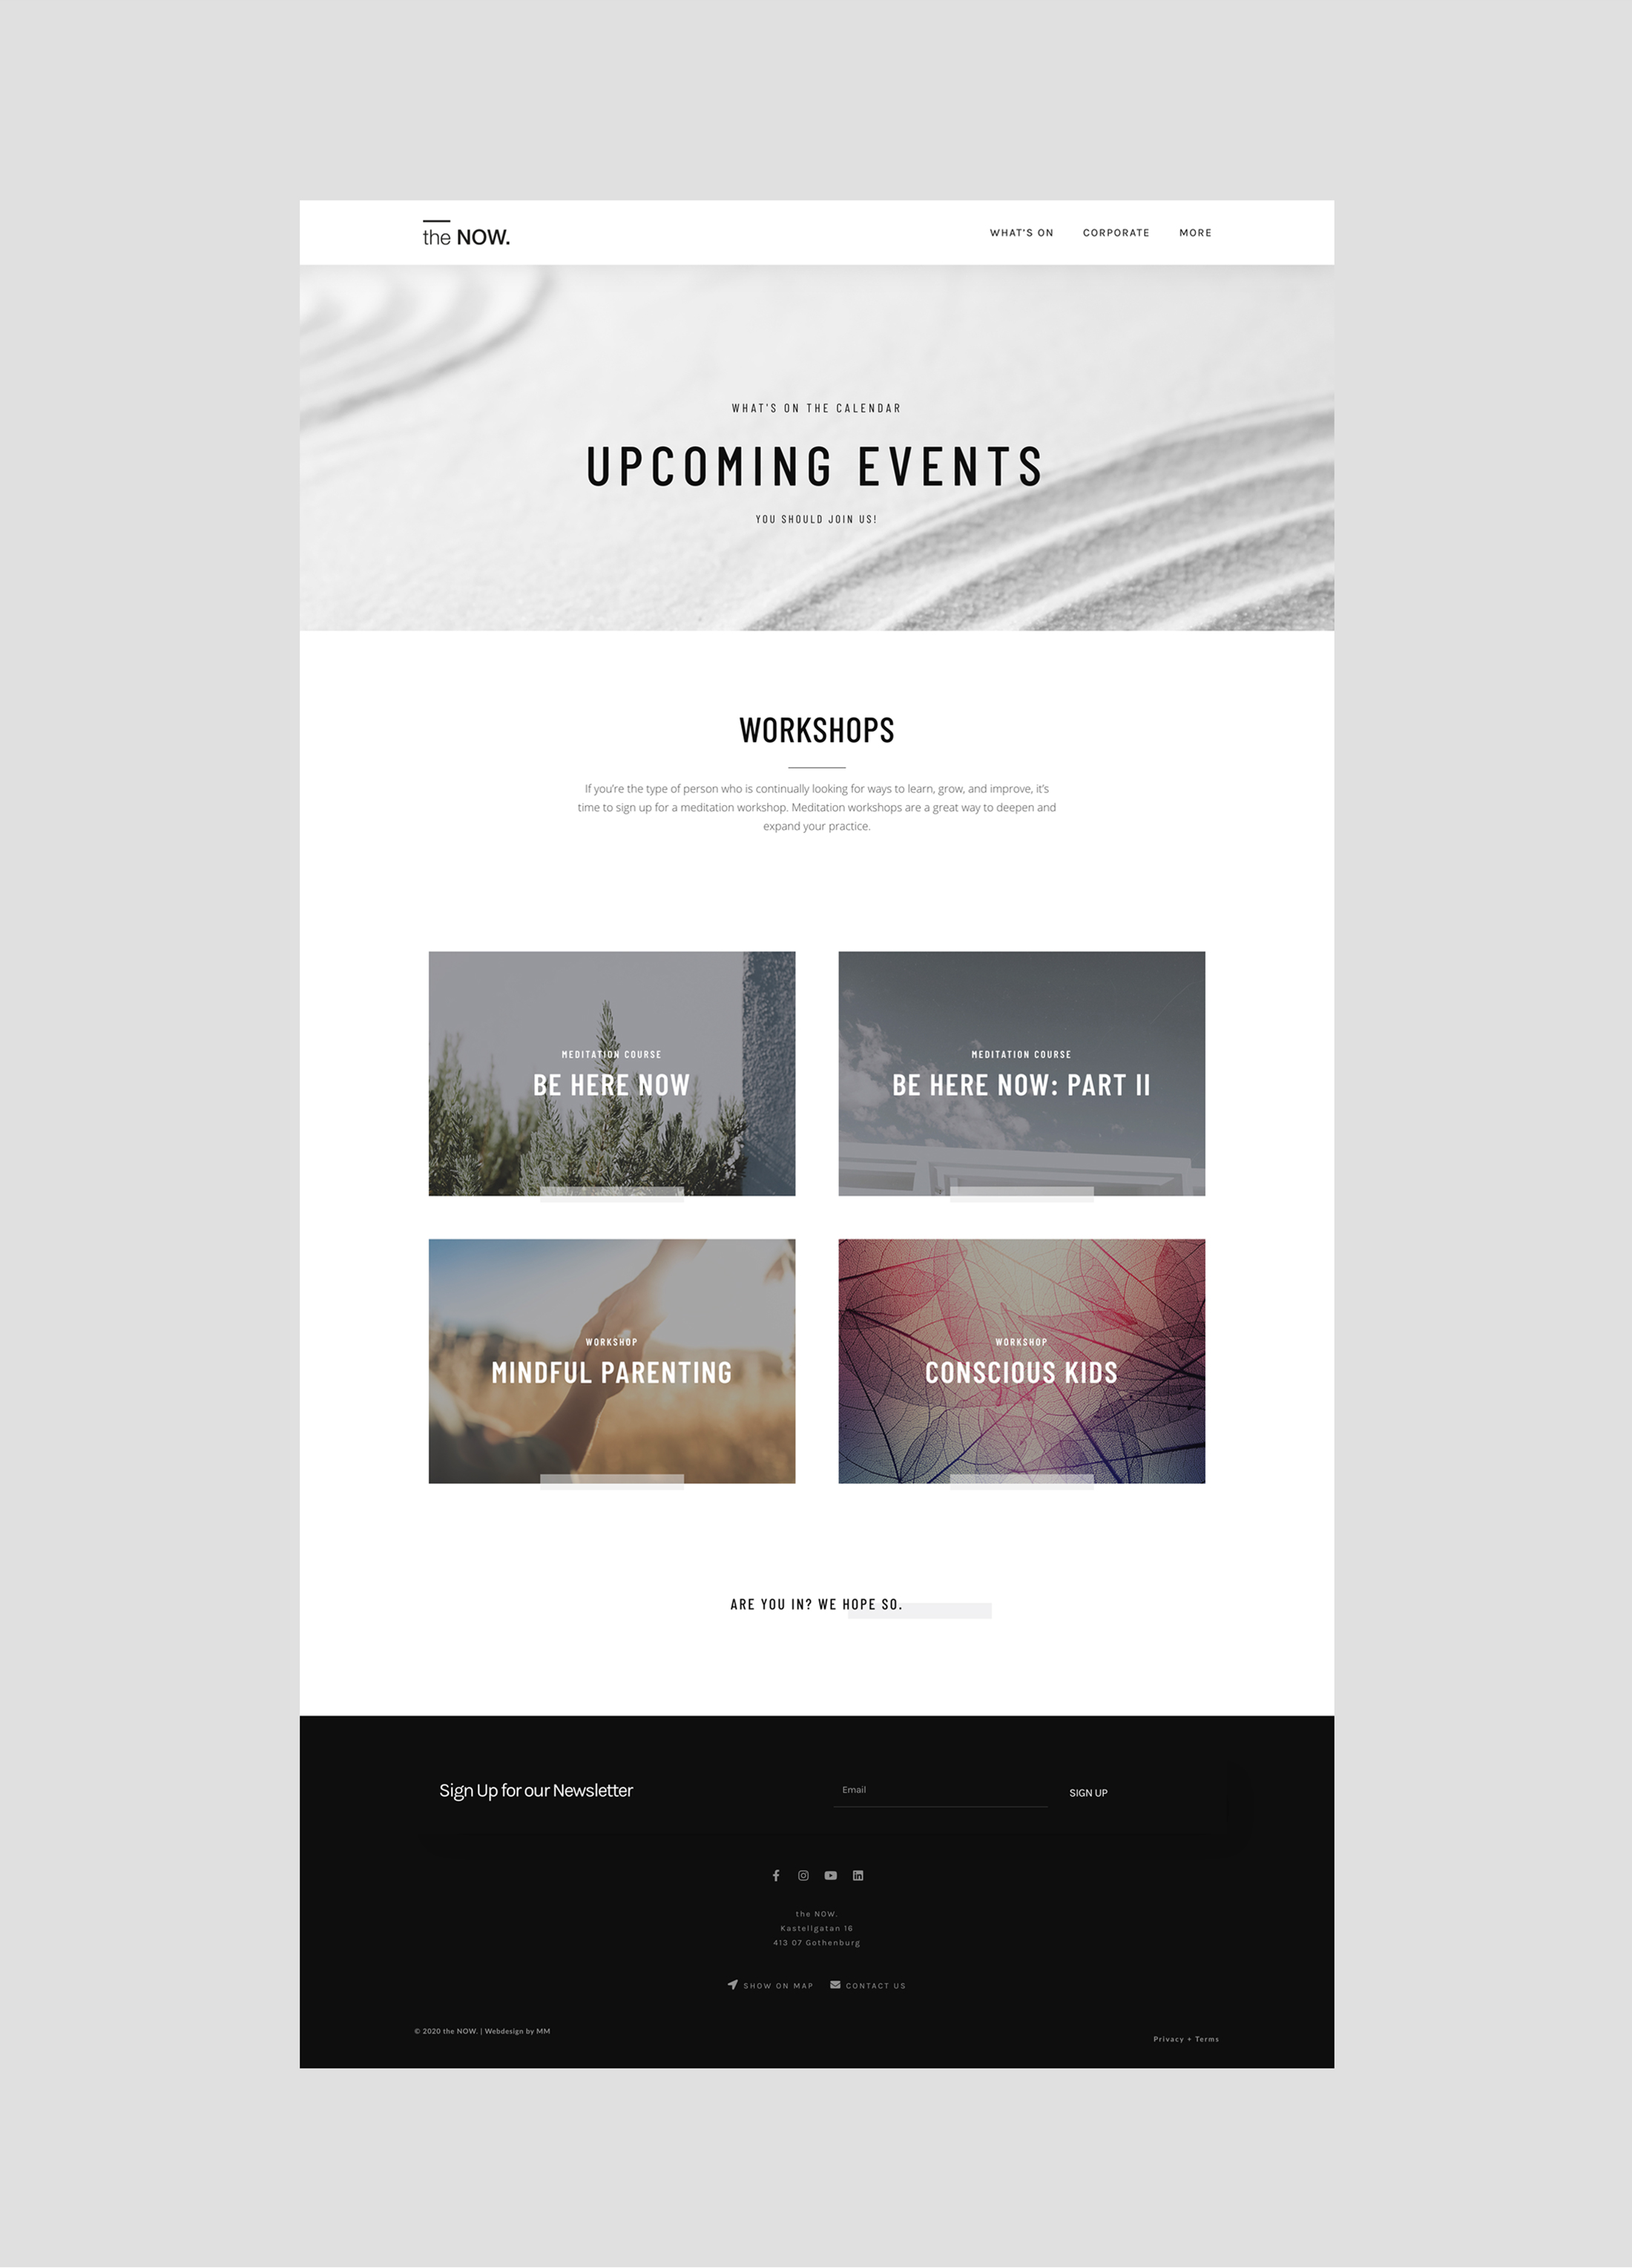 Upcoming events webdesign the NOW